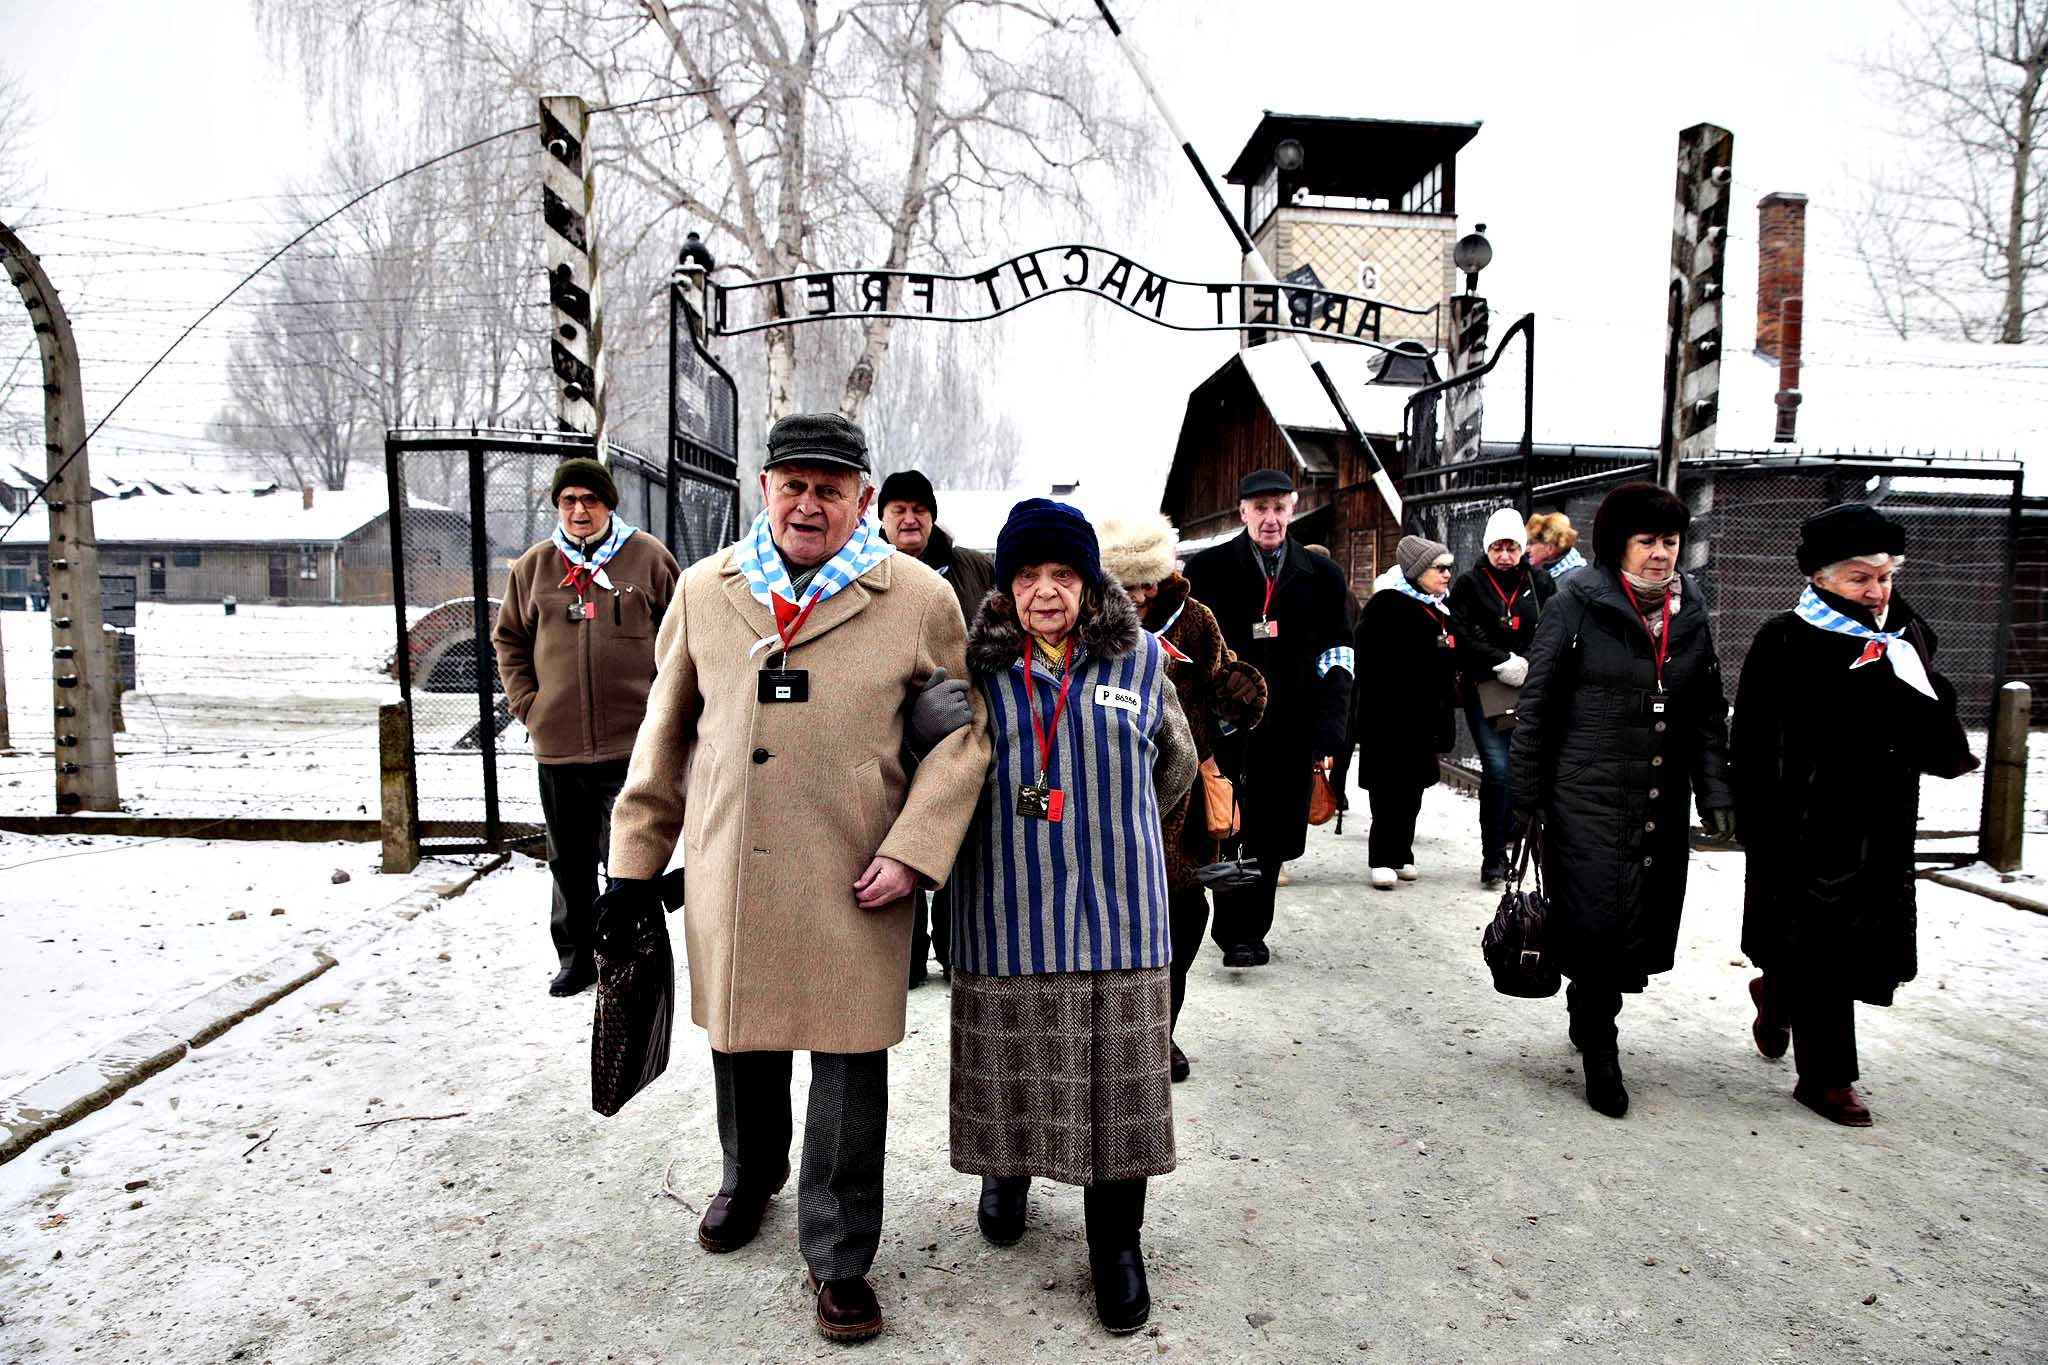 Holocaust survivors arrive for a ceremony to mark the 69th anniversary of the liberation of Auschwitz concentration camp and to remember the victims of the Holocaust in Auschwitz...Holocaust survivors arrive for a ceremony to mark the 69th anniversary of the liberation of Auschwitz concentration camp and to remember the victims of the Holocaust in Auschwitz January 27, 2014. The world marks International Holocaust Remembrance Day on January 27 to remember those who died during the Nazi organised genocide during World War Two that cost the lives of millions of Jews, Roma and Sinti, homosexuals and opponents to Germany's fascist regime and its collaborators.